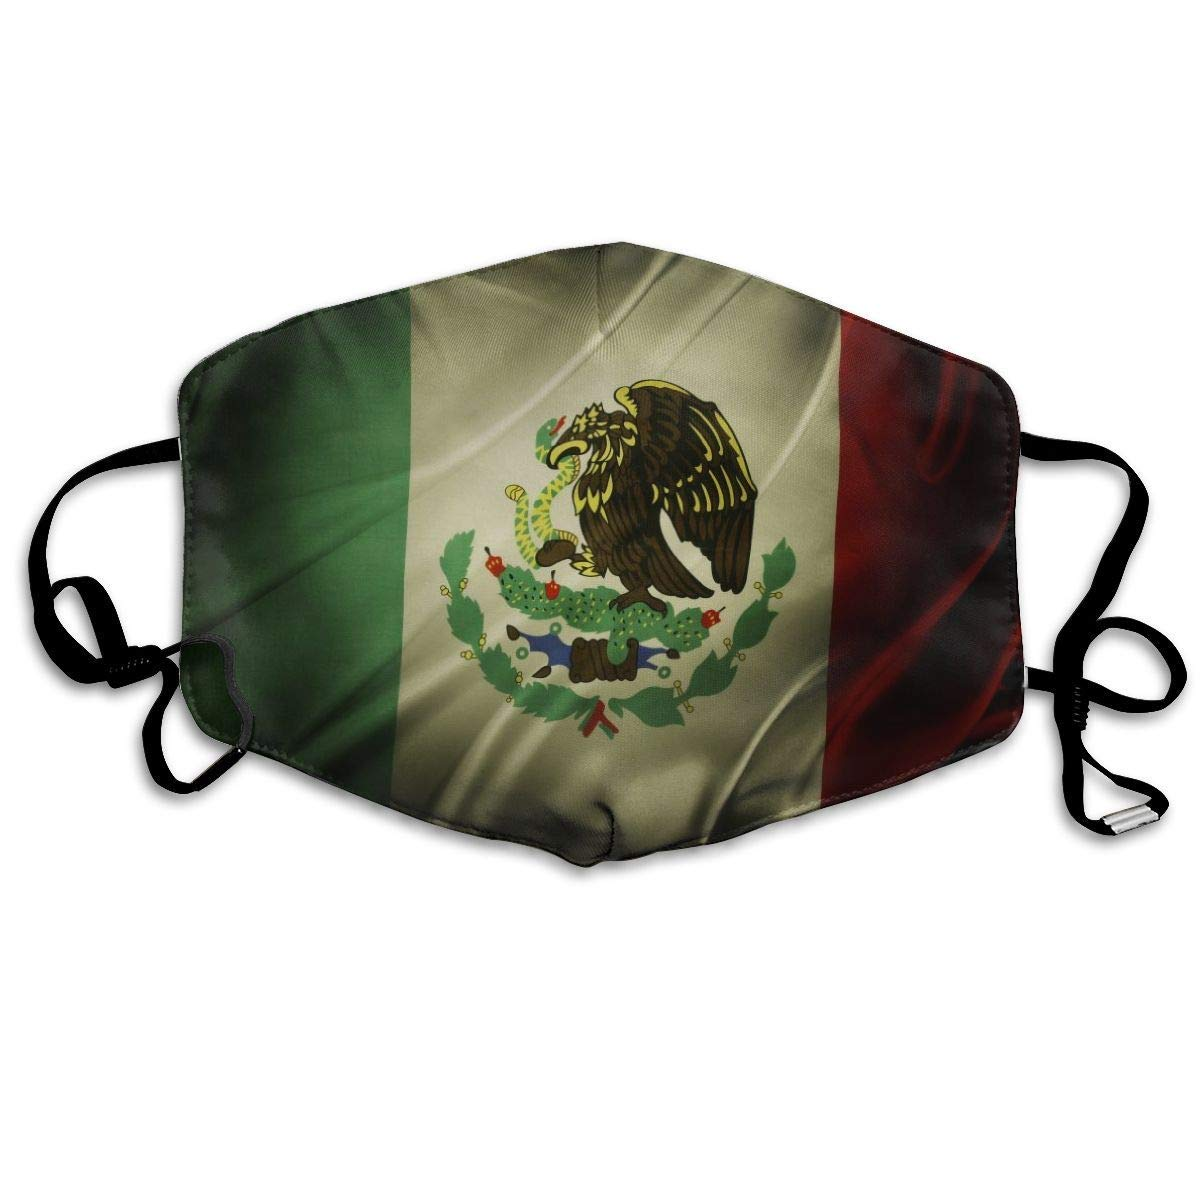 Breathable Anti Dust Mouth Mask With Adjustable Earloop, Warm Windproof Reusable Washable Half Face Mask, Retro Mexico Flag